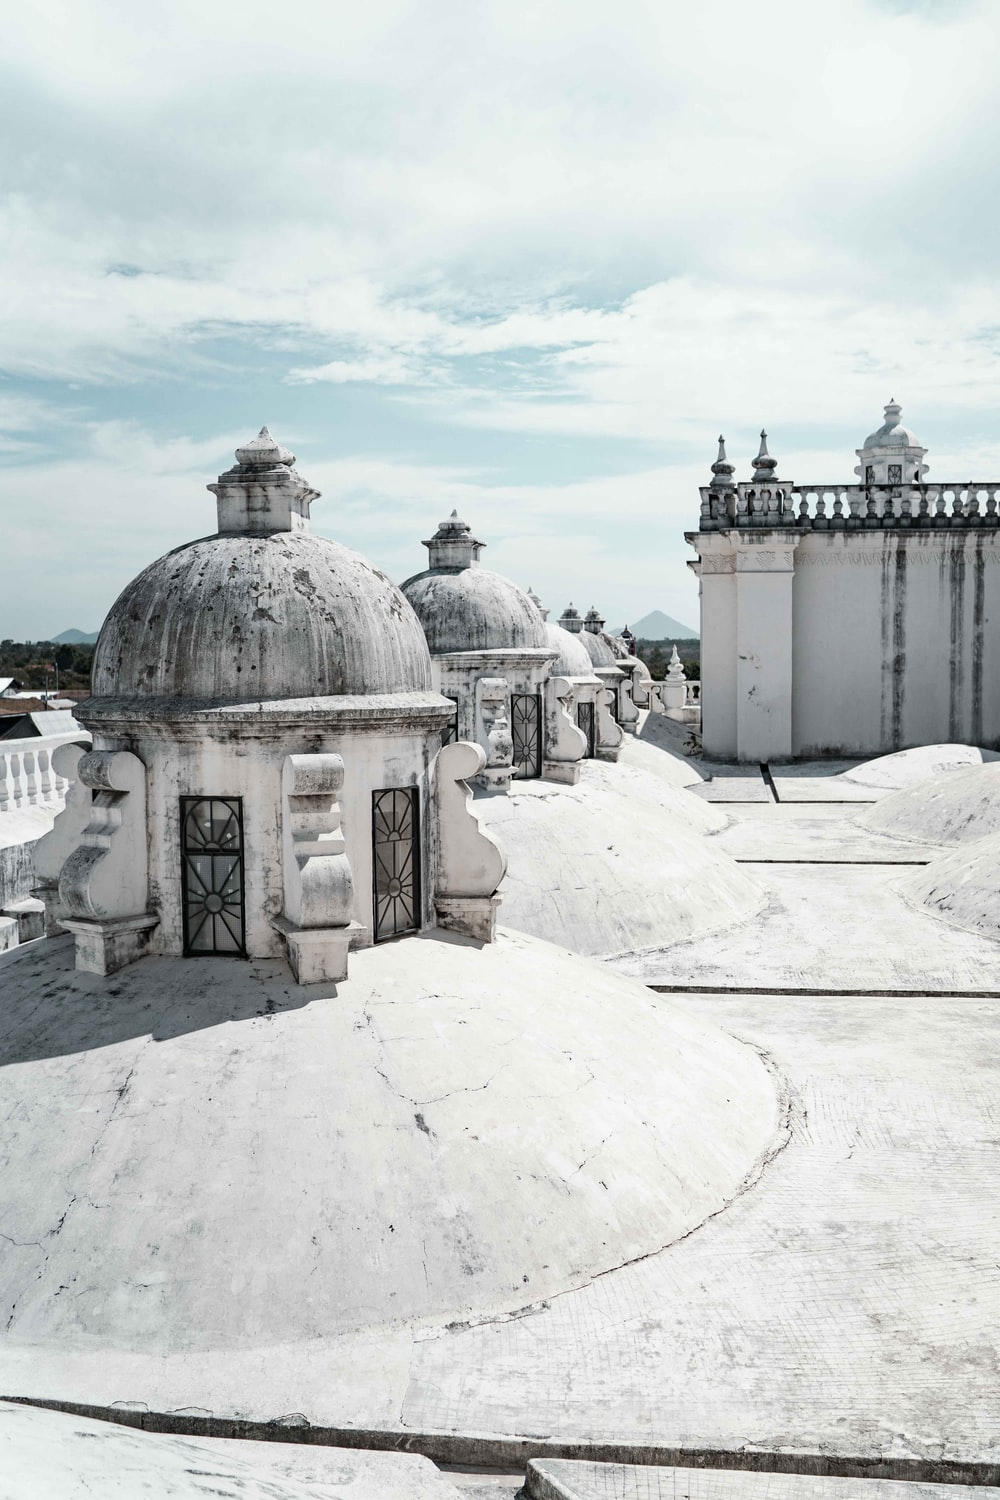 white and grey domed building